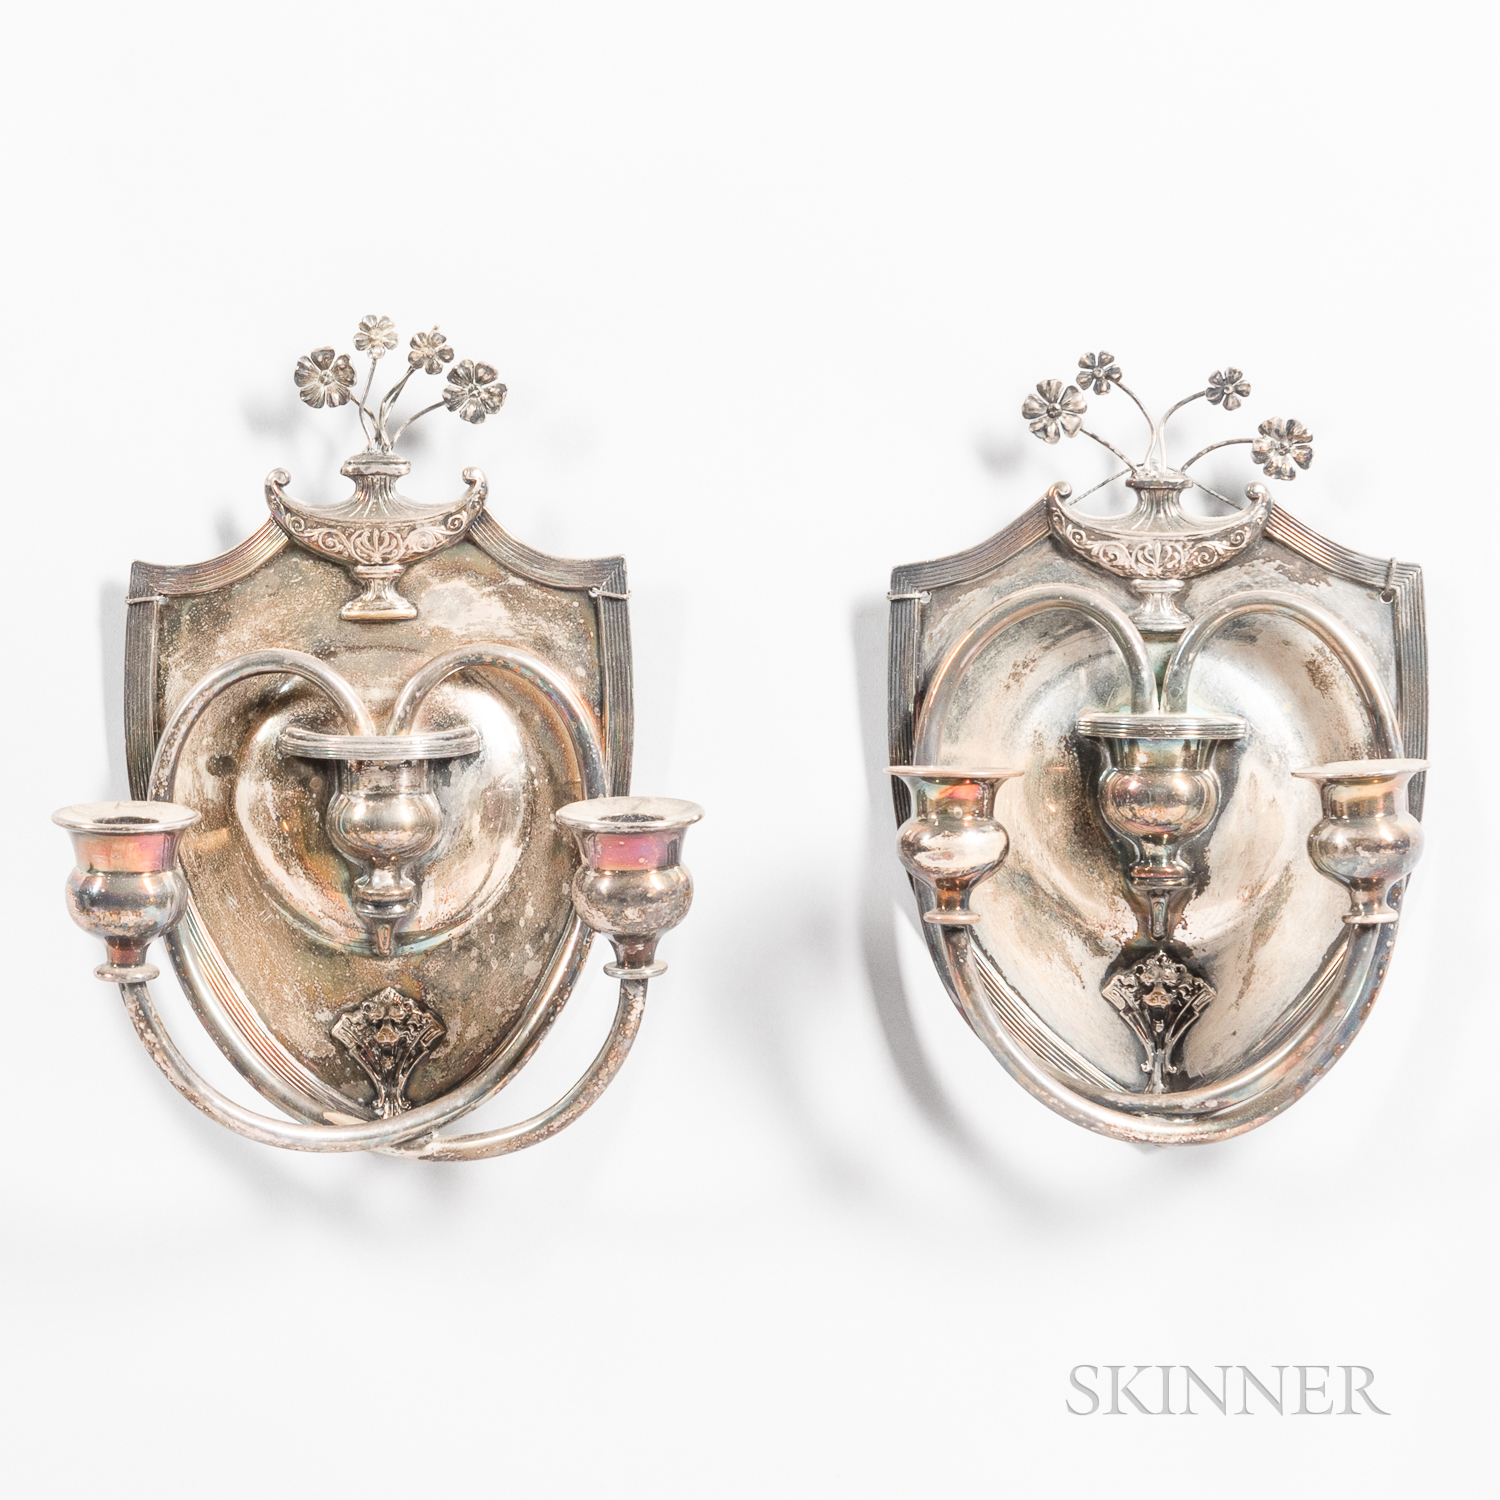 Pair of Silver-plated Two-light Wall Sconces